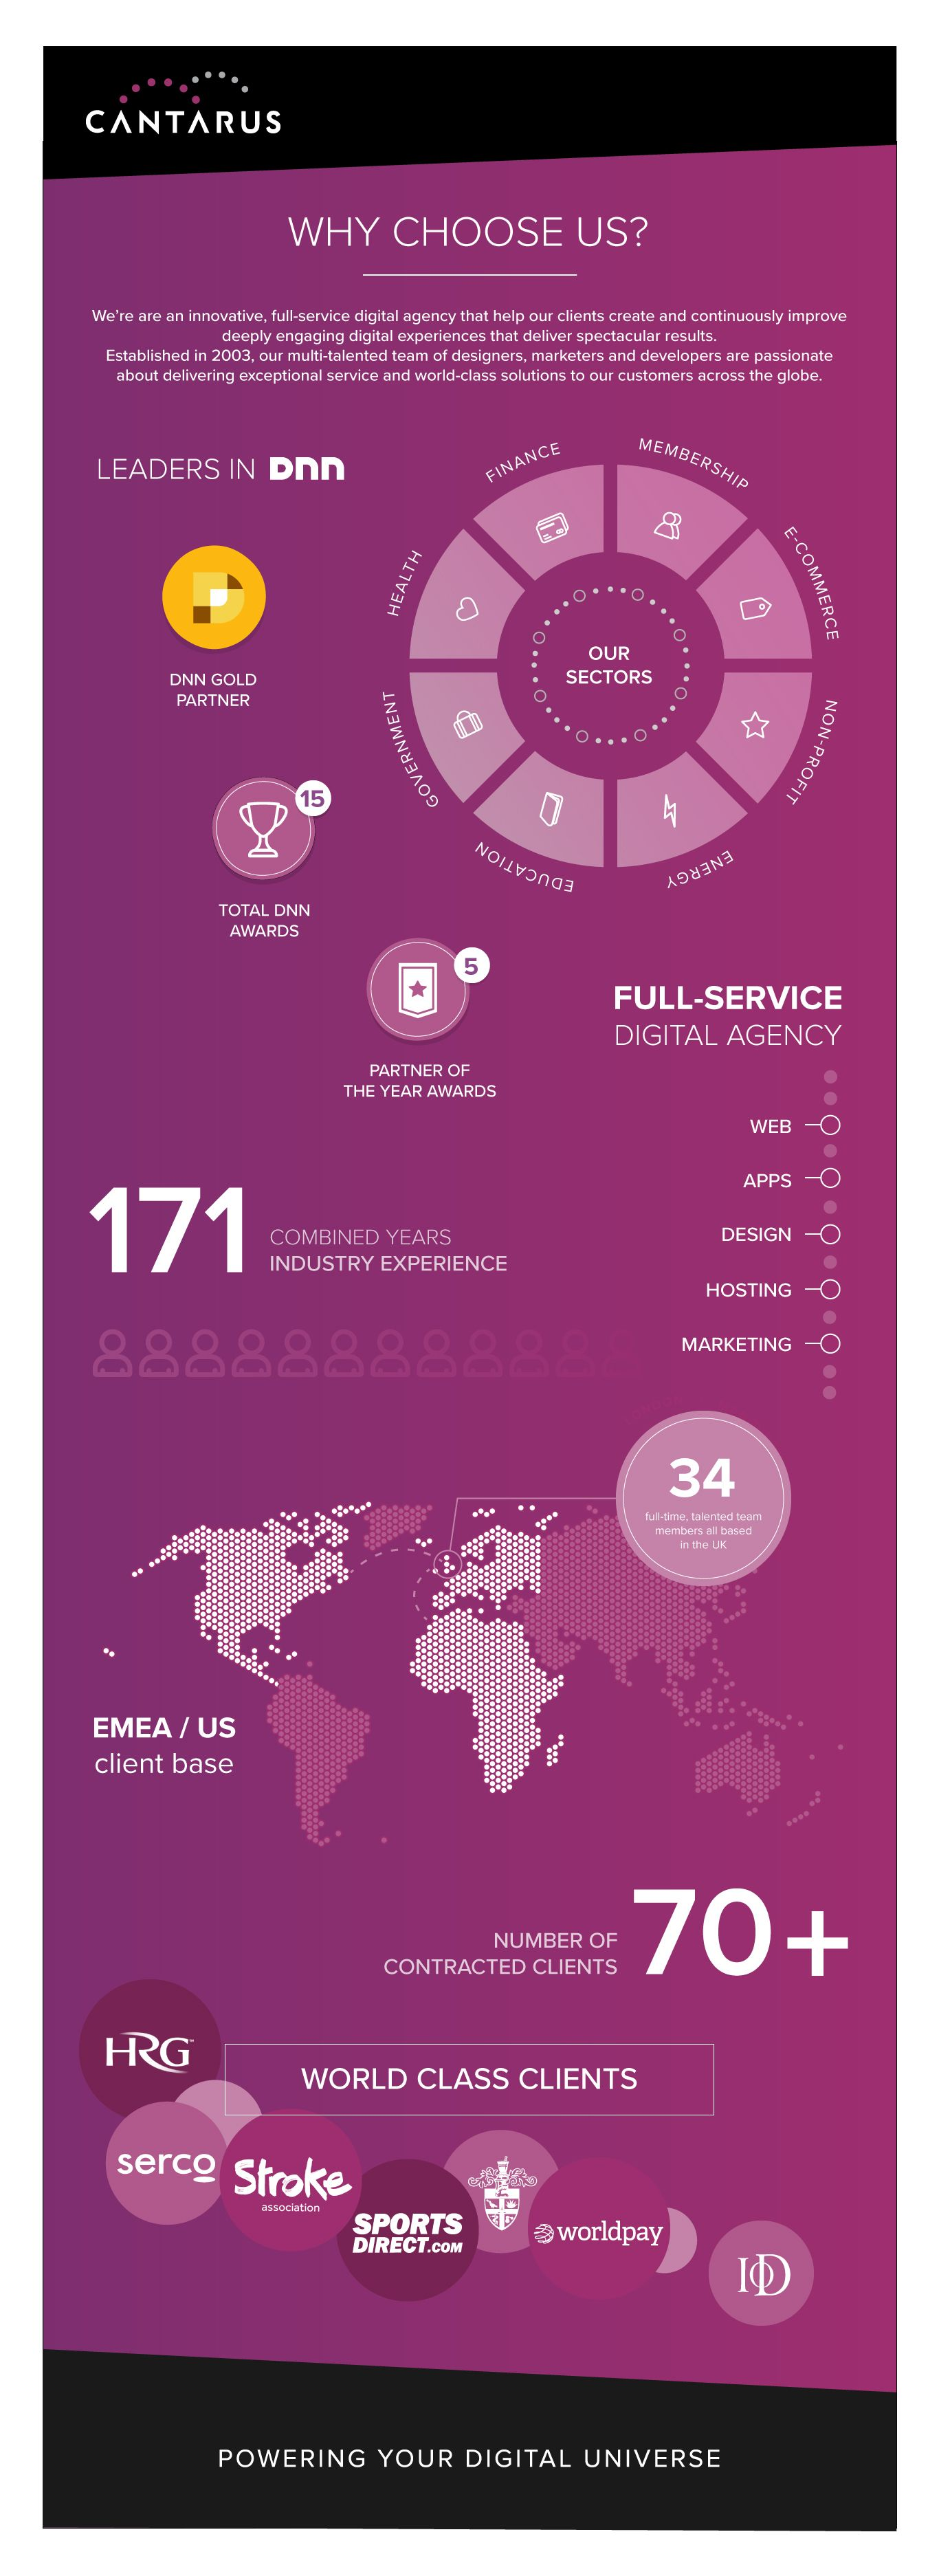 Infographics Ui Design Et Web Design: Our Infographic About Cantarus, Our Growth, Services And